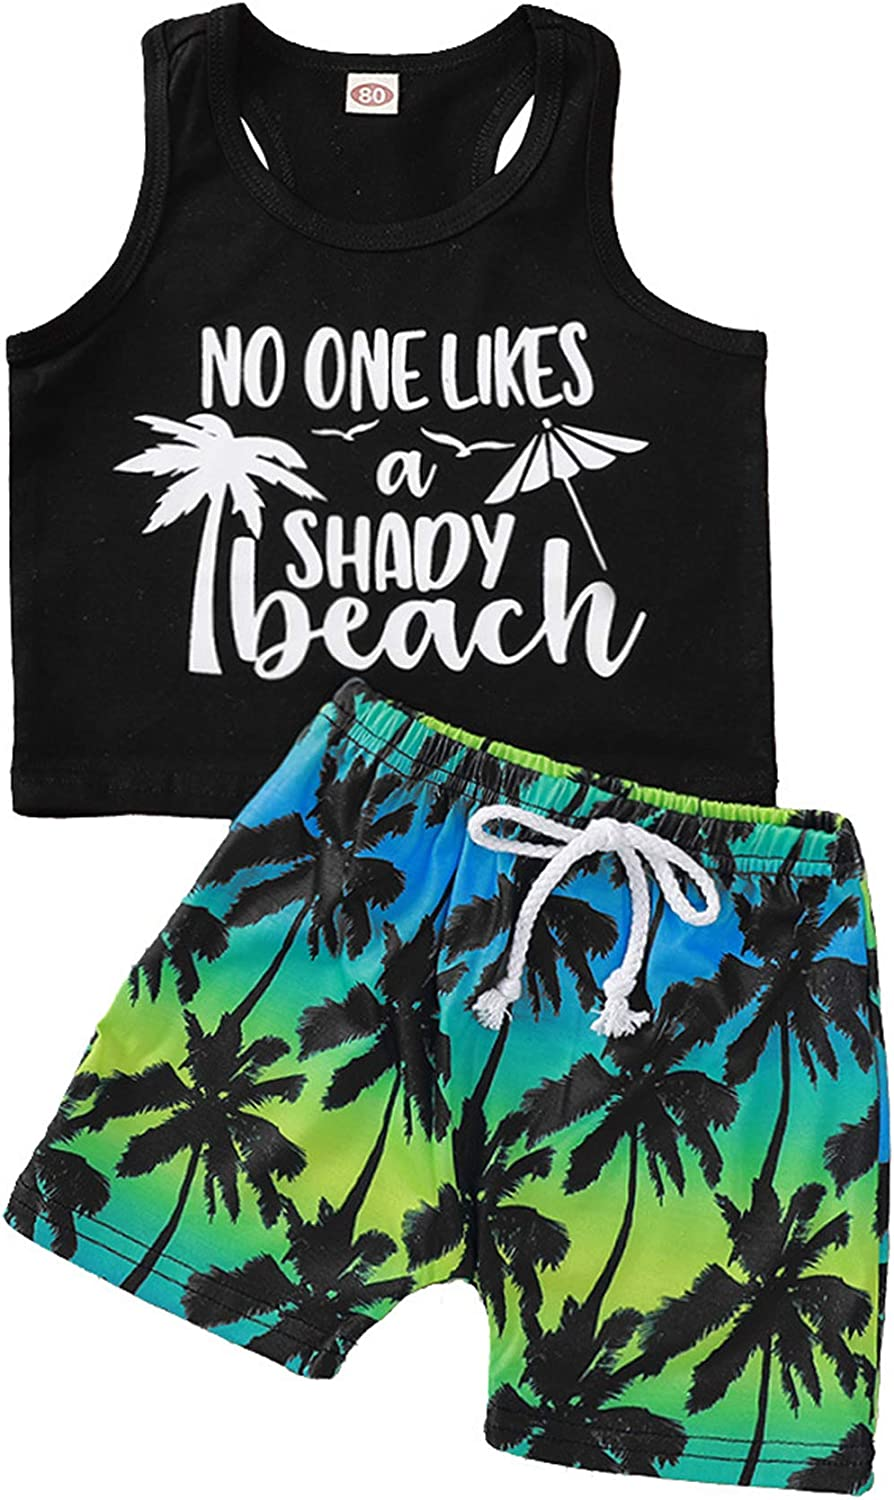 2Pcs Baby Boys Summer Clothes No One Likes A Shady Beach Sleeveless Tank Tops Shirt + Shorts Toddler Kids Casual Outfit